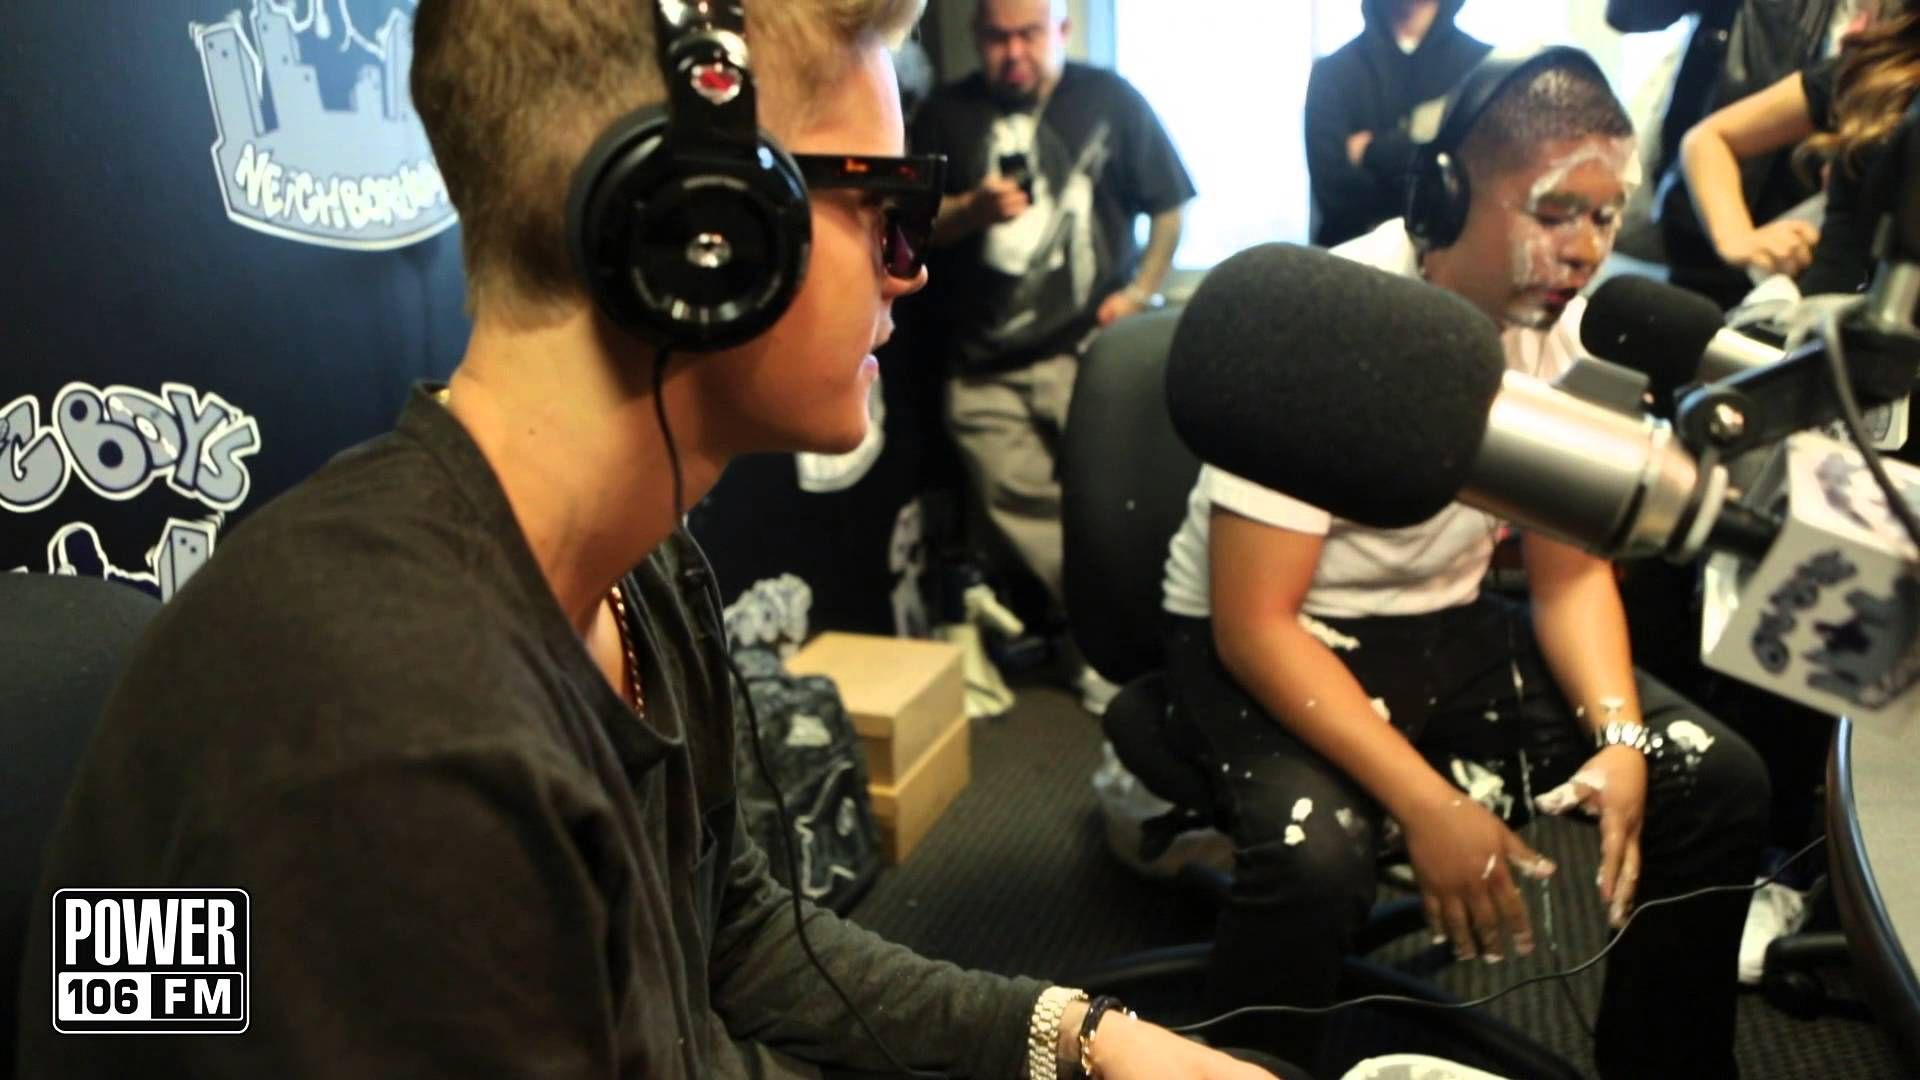 Justin Bieber hits Louie G with a pie and stun gun,funny!